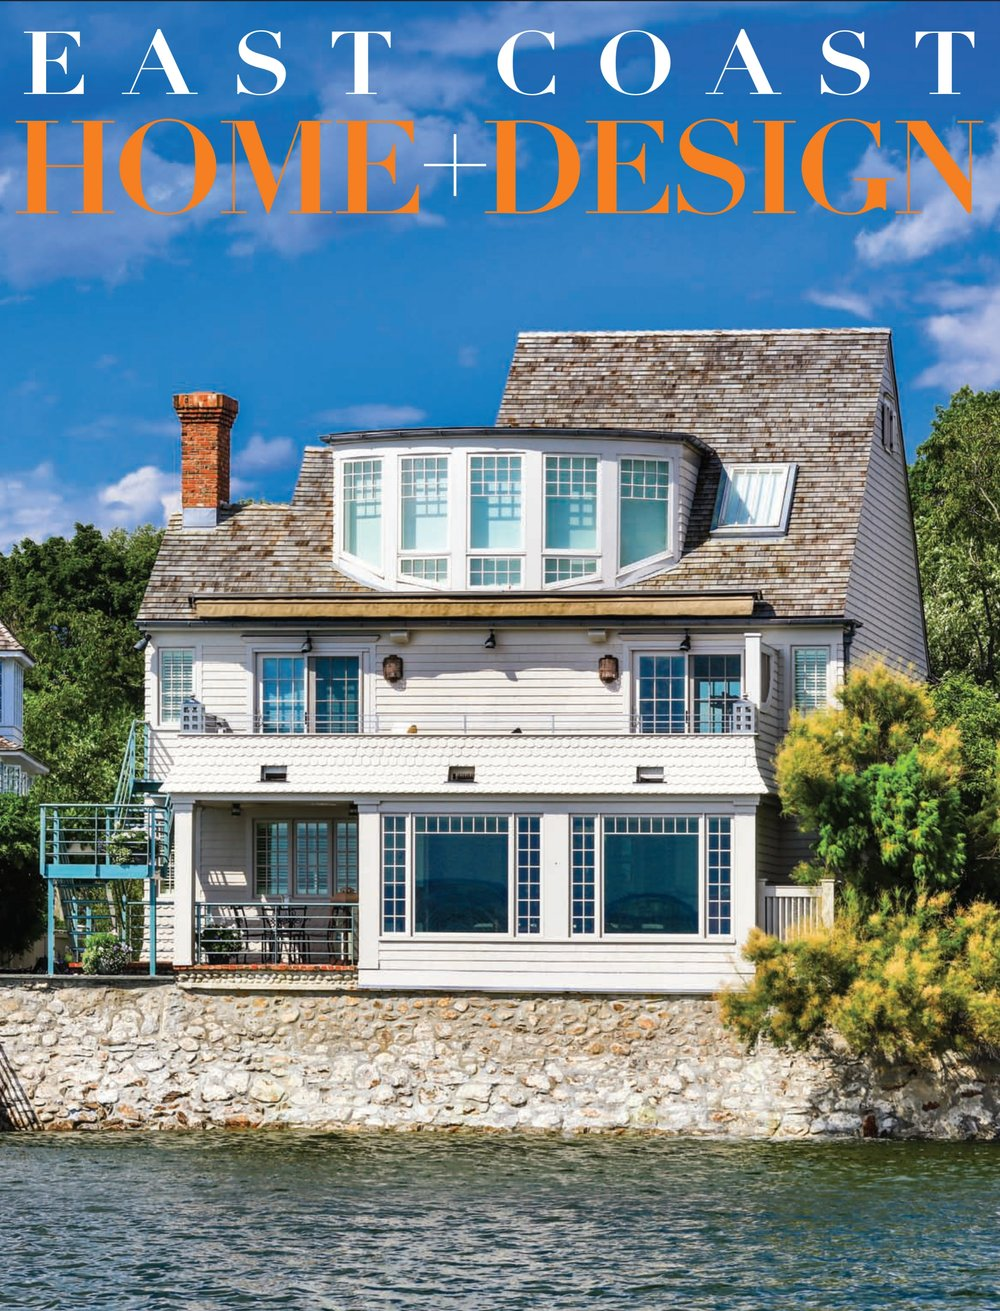 East Coast Home Design. March/April 2016.